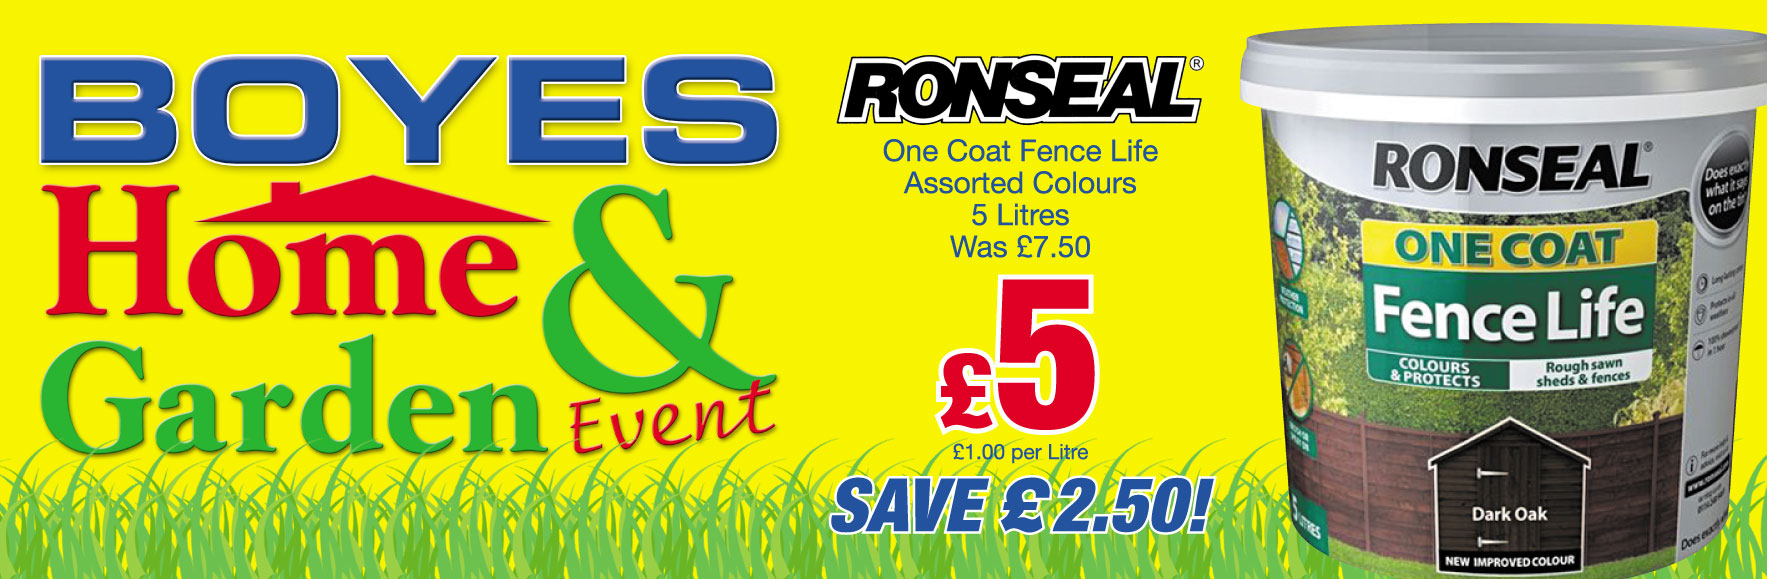 Ronseal One Coat Fence Life Was £7.50 NOW £5